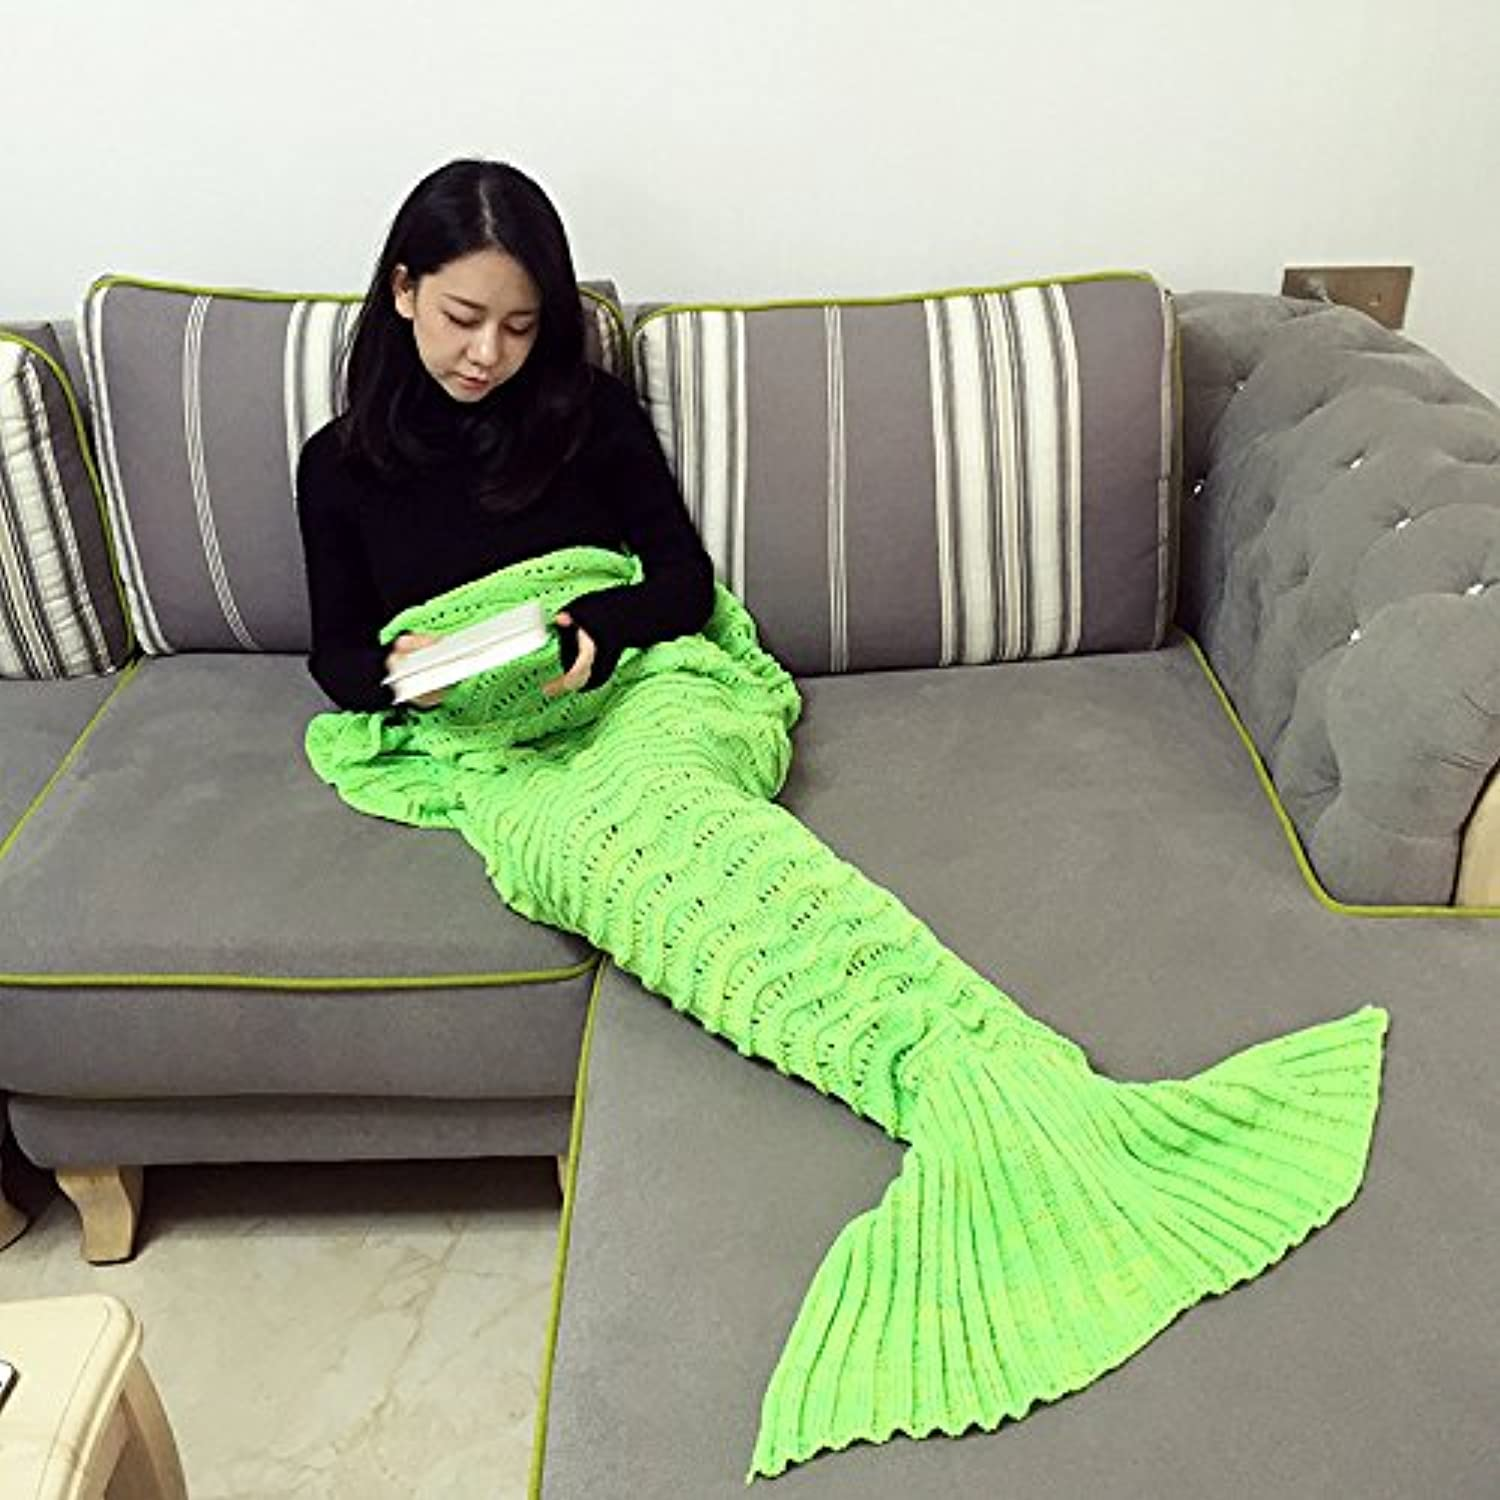 Zhiyu Crochet Mermaid Tail Blanket for Adult, 74-Inch-by-35-Inch, Mint Green (Light Green)